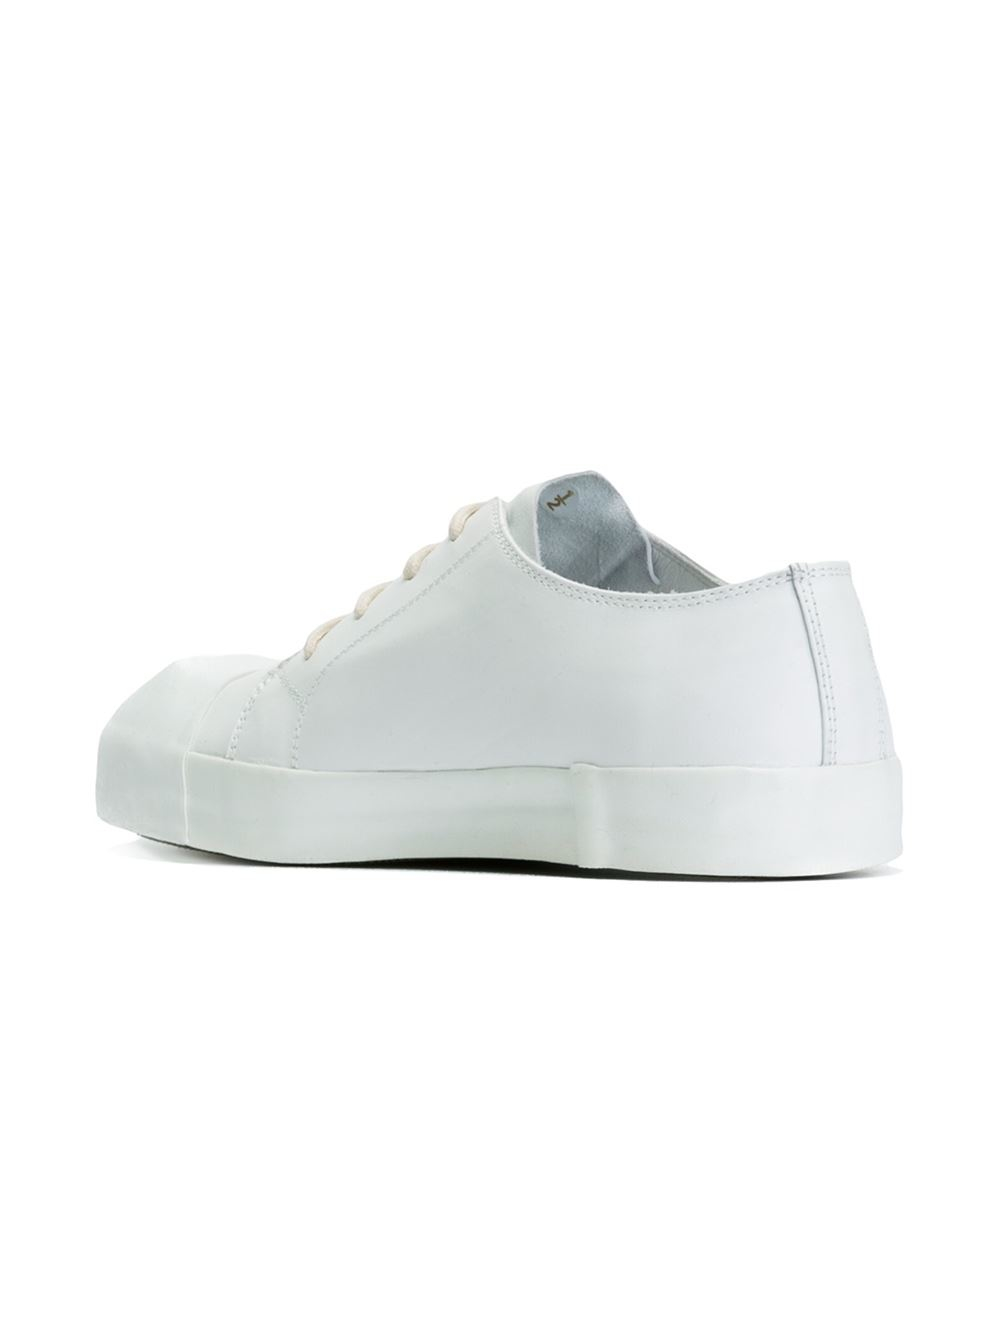 Lyst - Ann Demeulemeester Low-top Sneakers in White 085c9d6a0